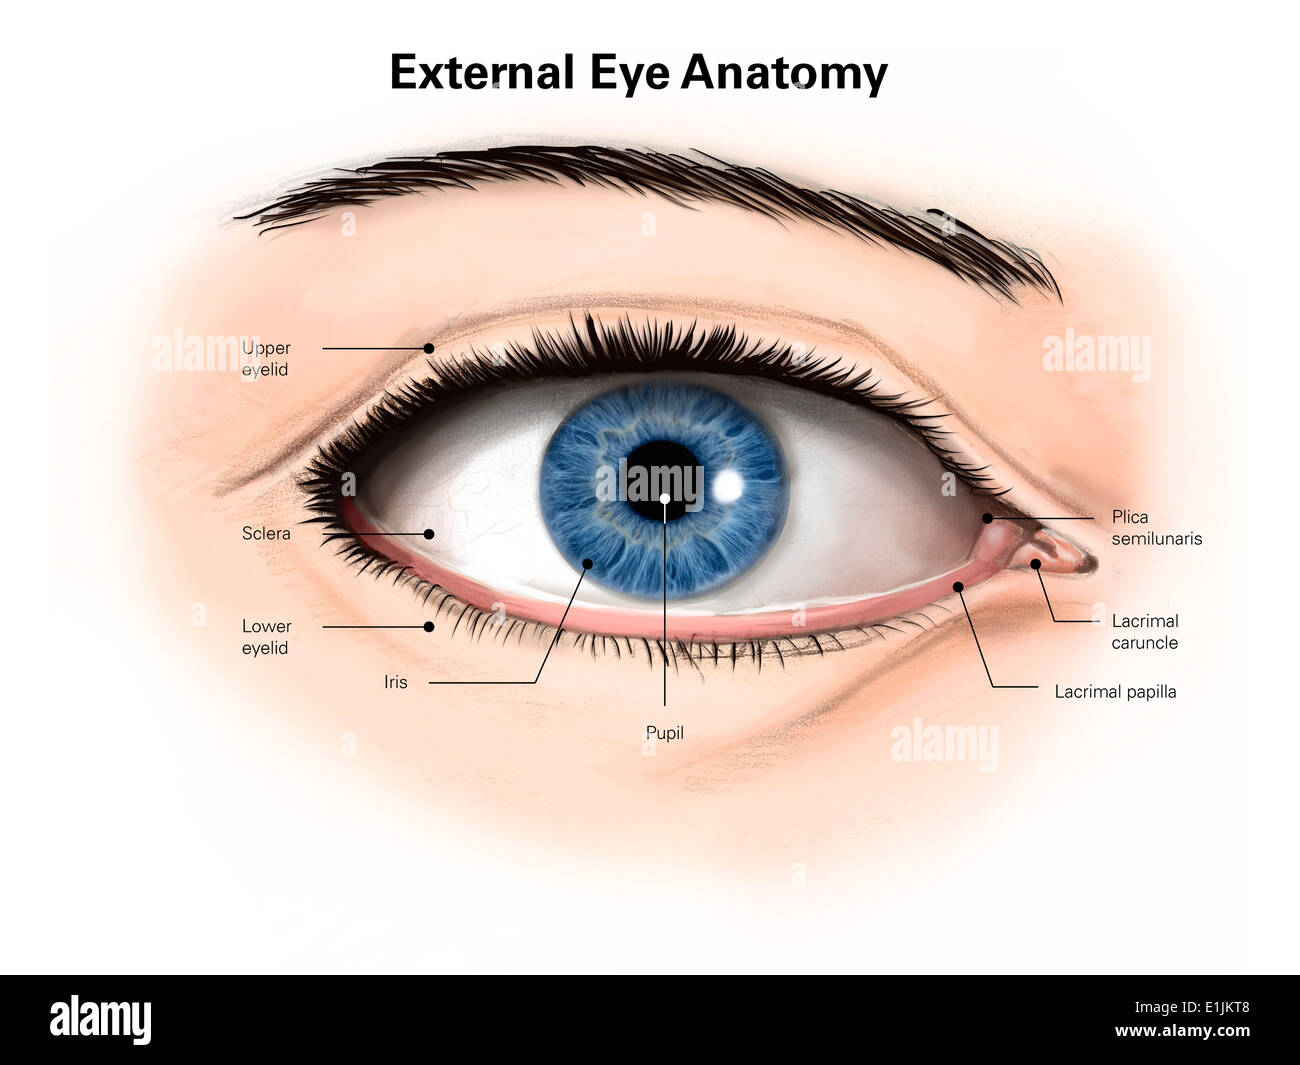 External Anatomy Of The Human Eye With Labels Stock Photo